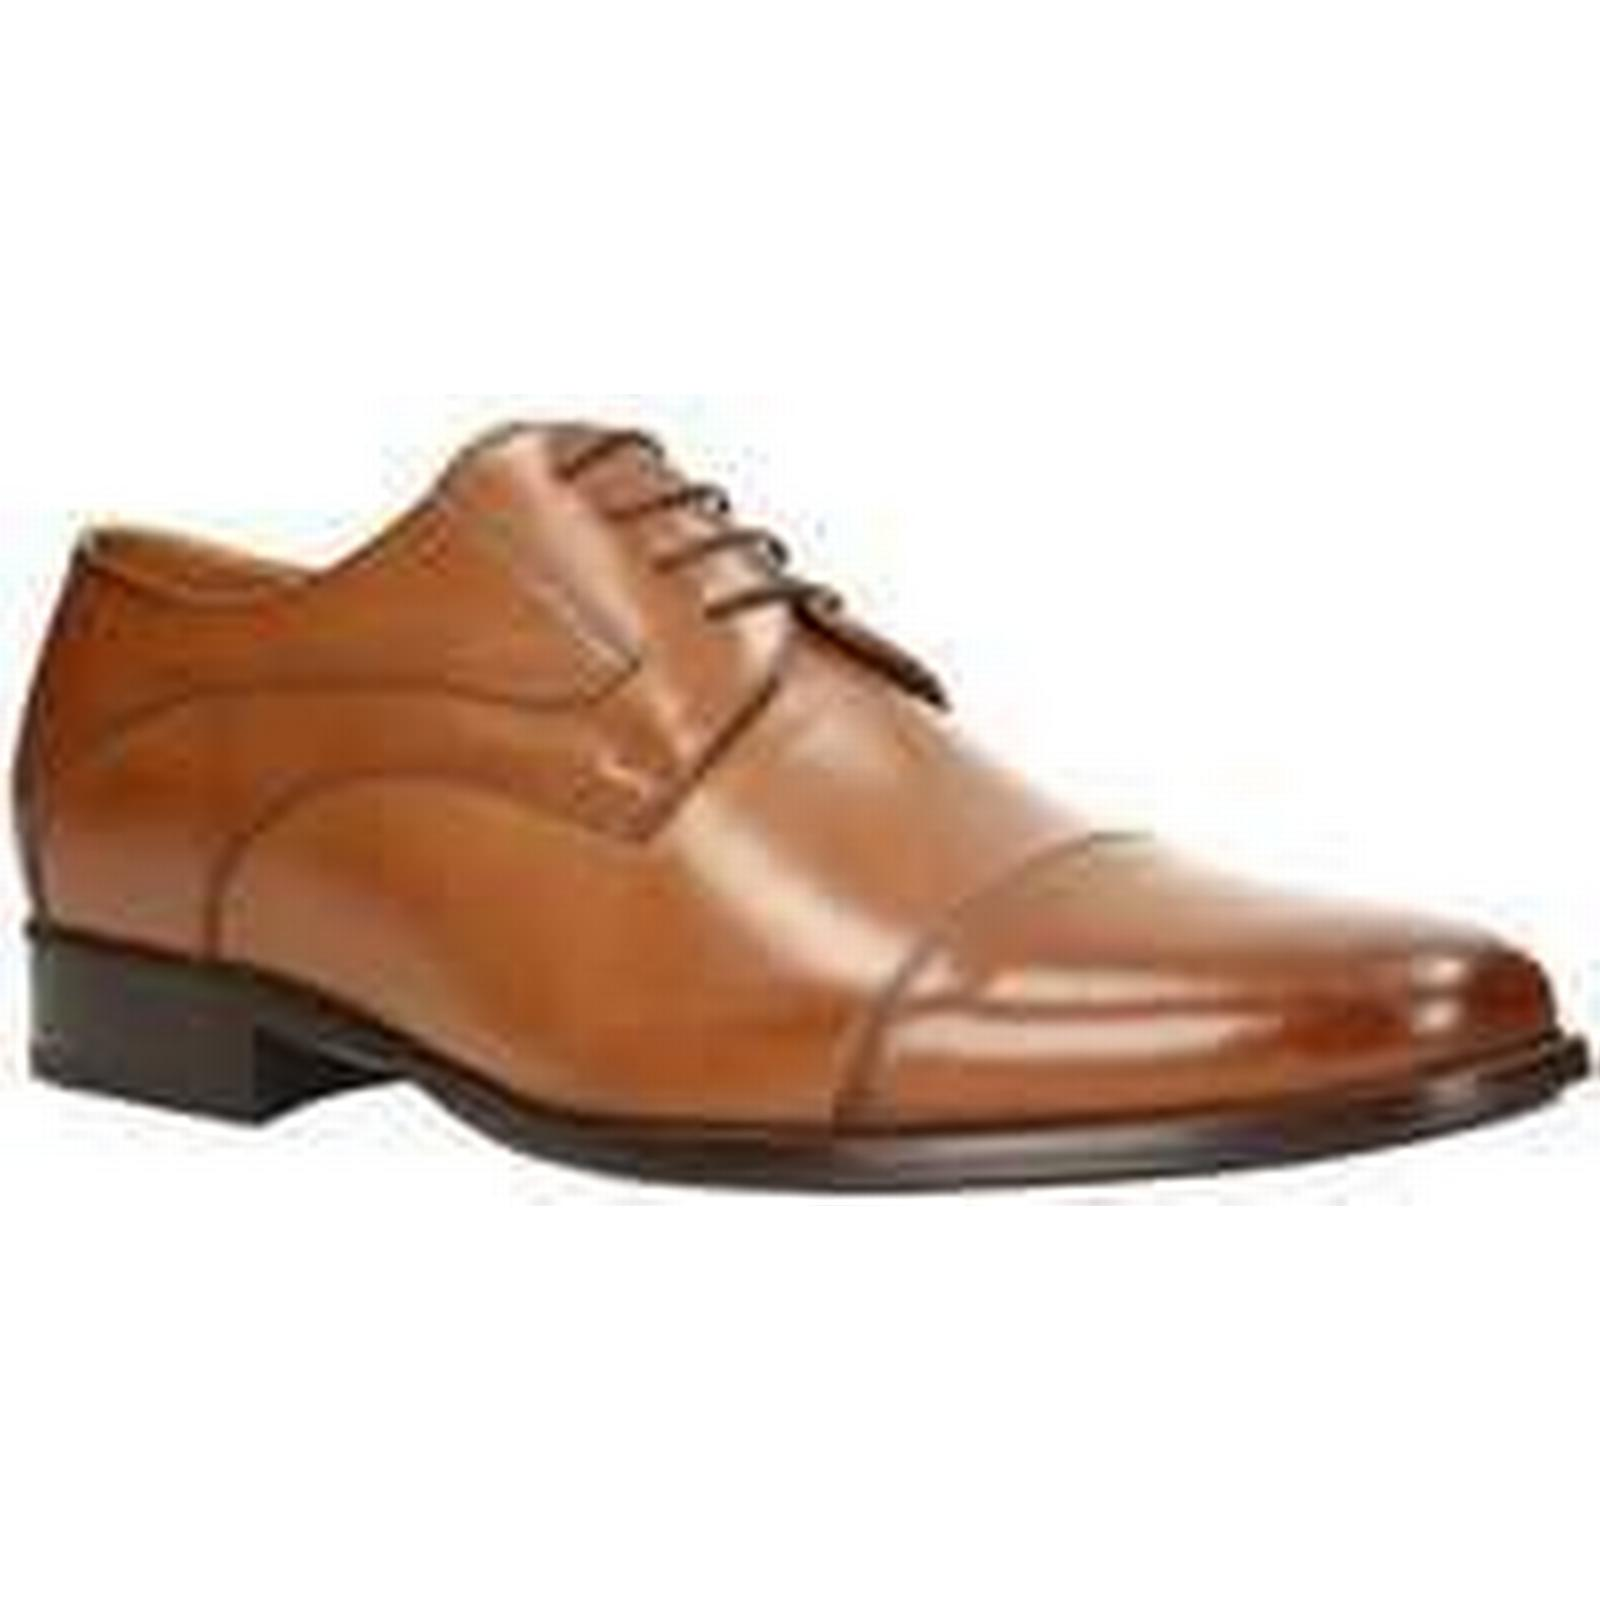 Spartoo.co.uk Gino Rossi Derbies MPC655 Brown Man Spring/Summer Collection Formal 2018 men's Smart / Formal Collection Shoes in Brown ac2dbb